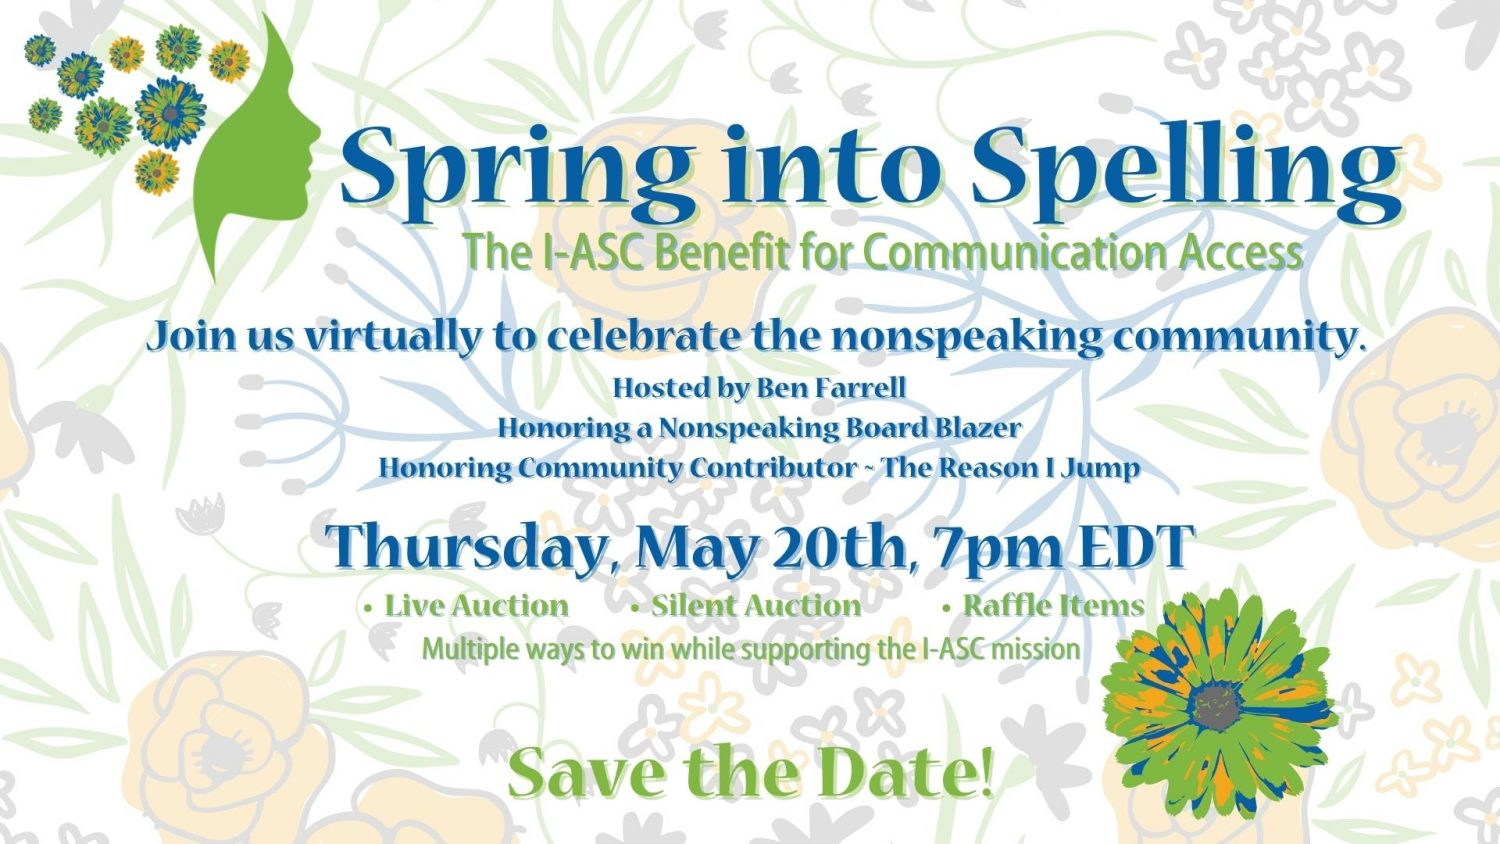 S2C, Spelling to Communicate, nonspeaking, nonspeakers, Autism, I-ASC, Speller, nonverbal, RPM, Spring, Spring into Spelling, Fundraiser, Benefit